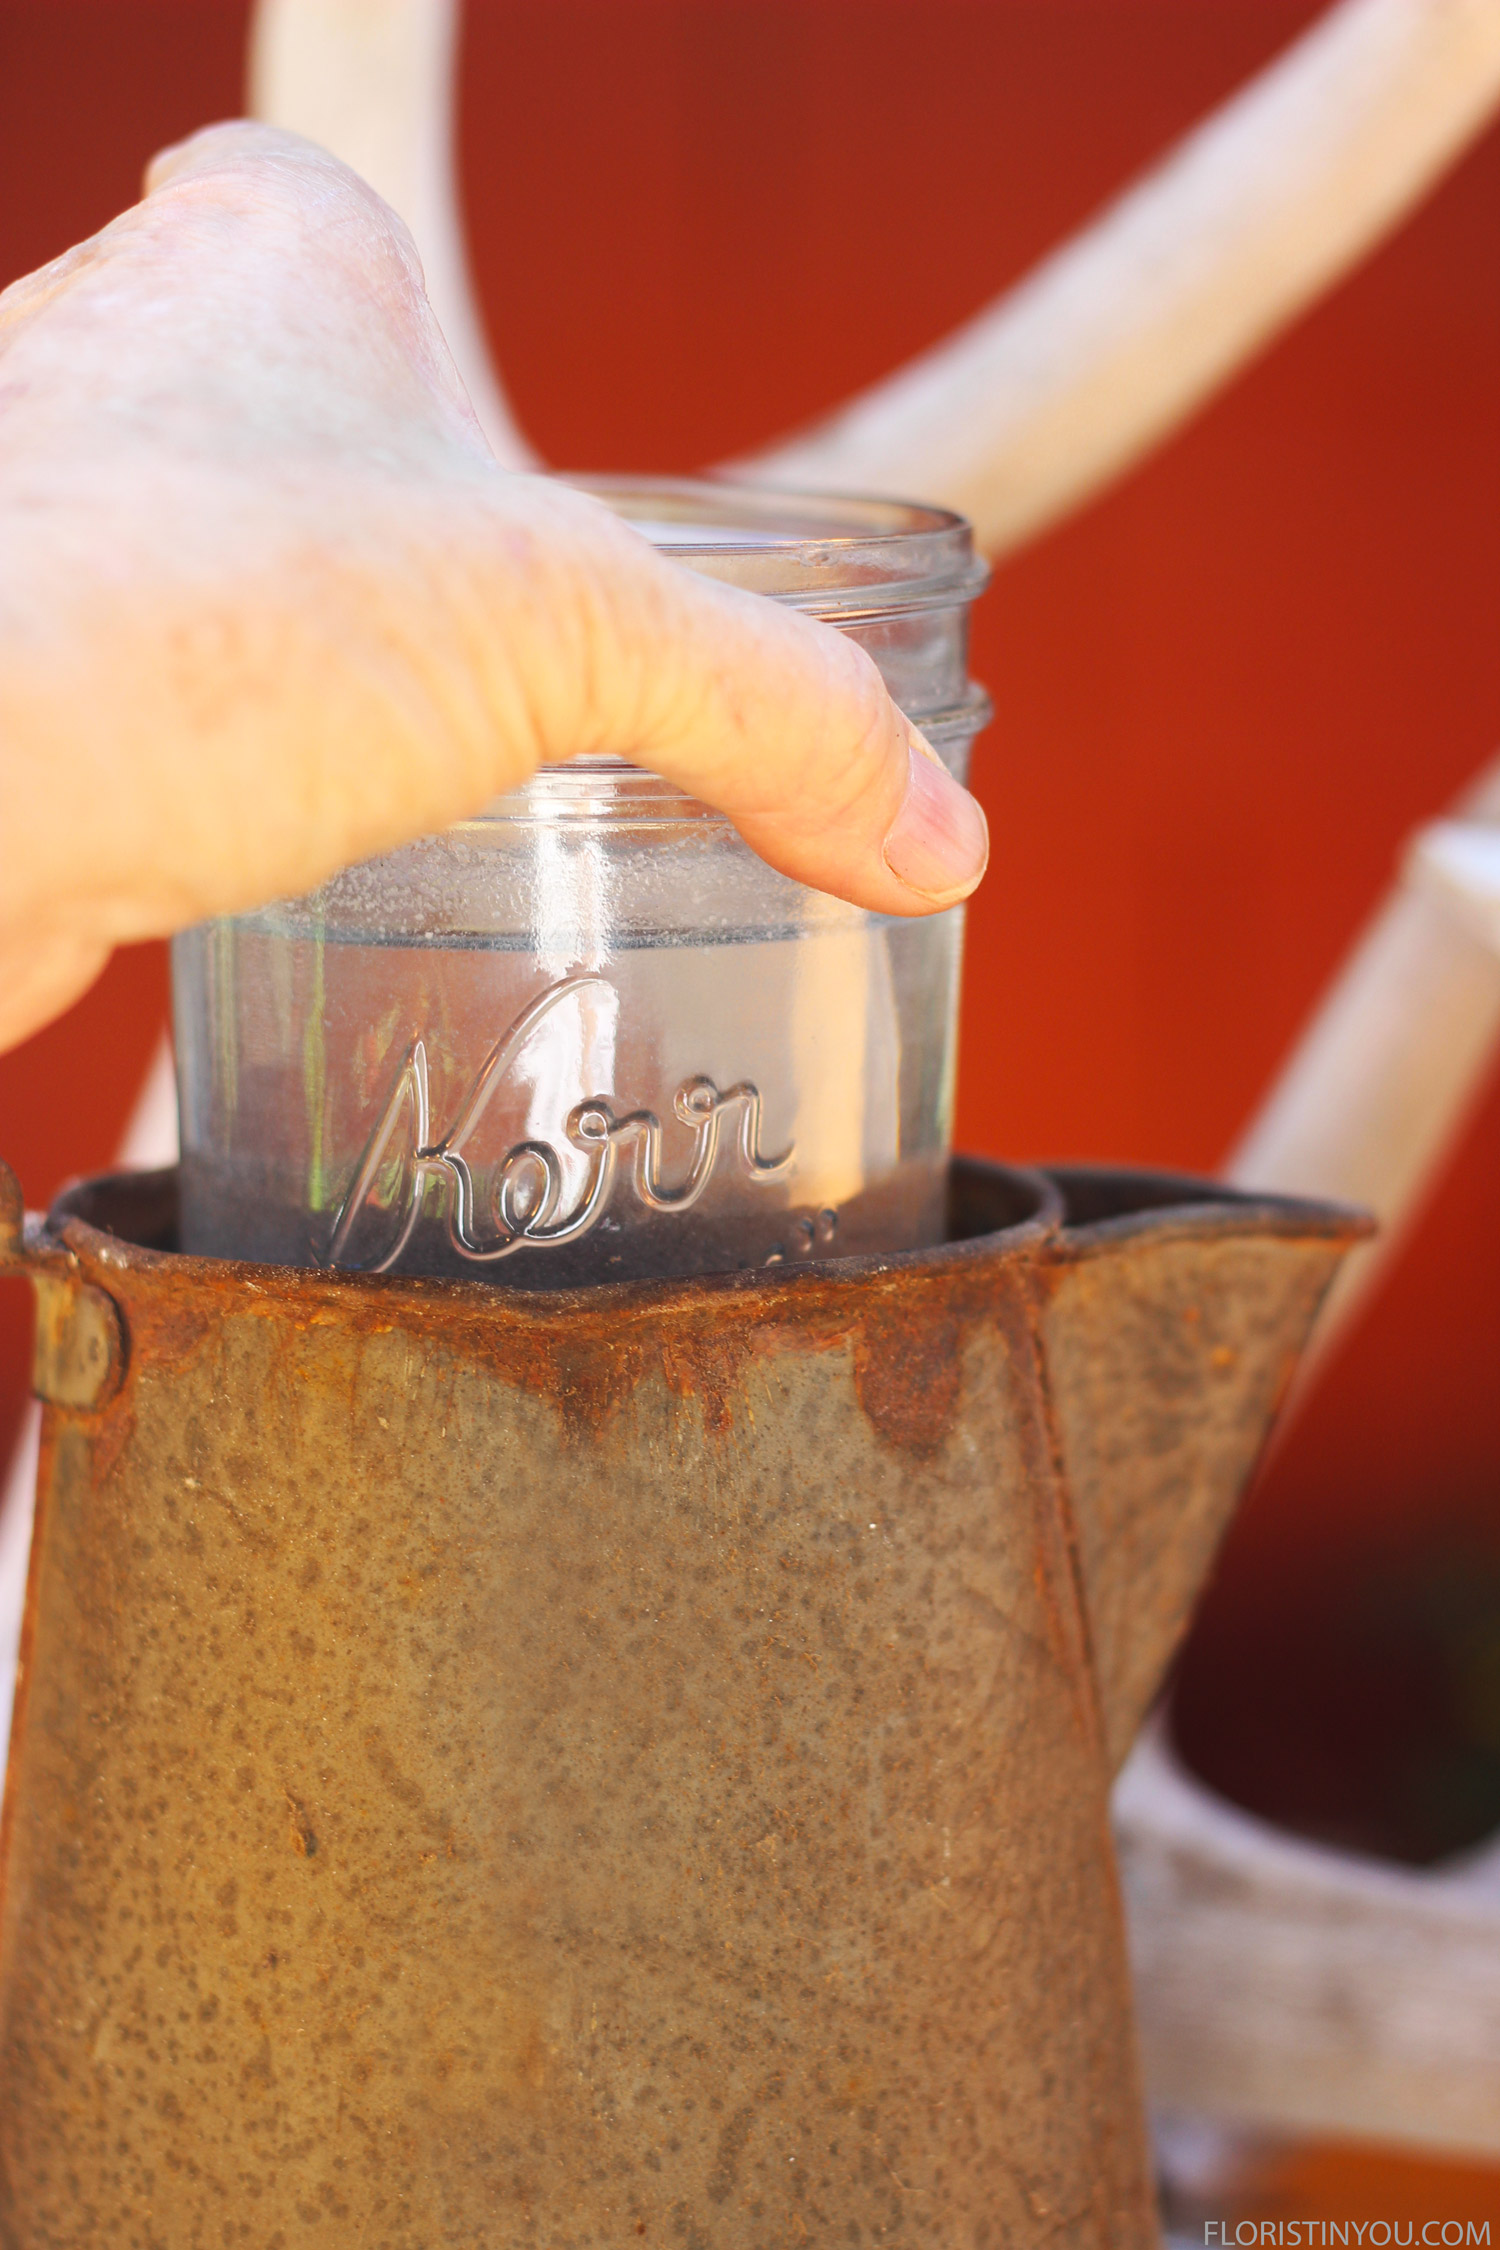 Slide the mason jar into the container.